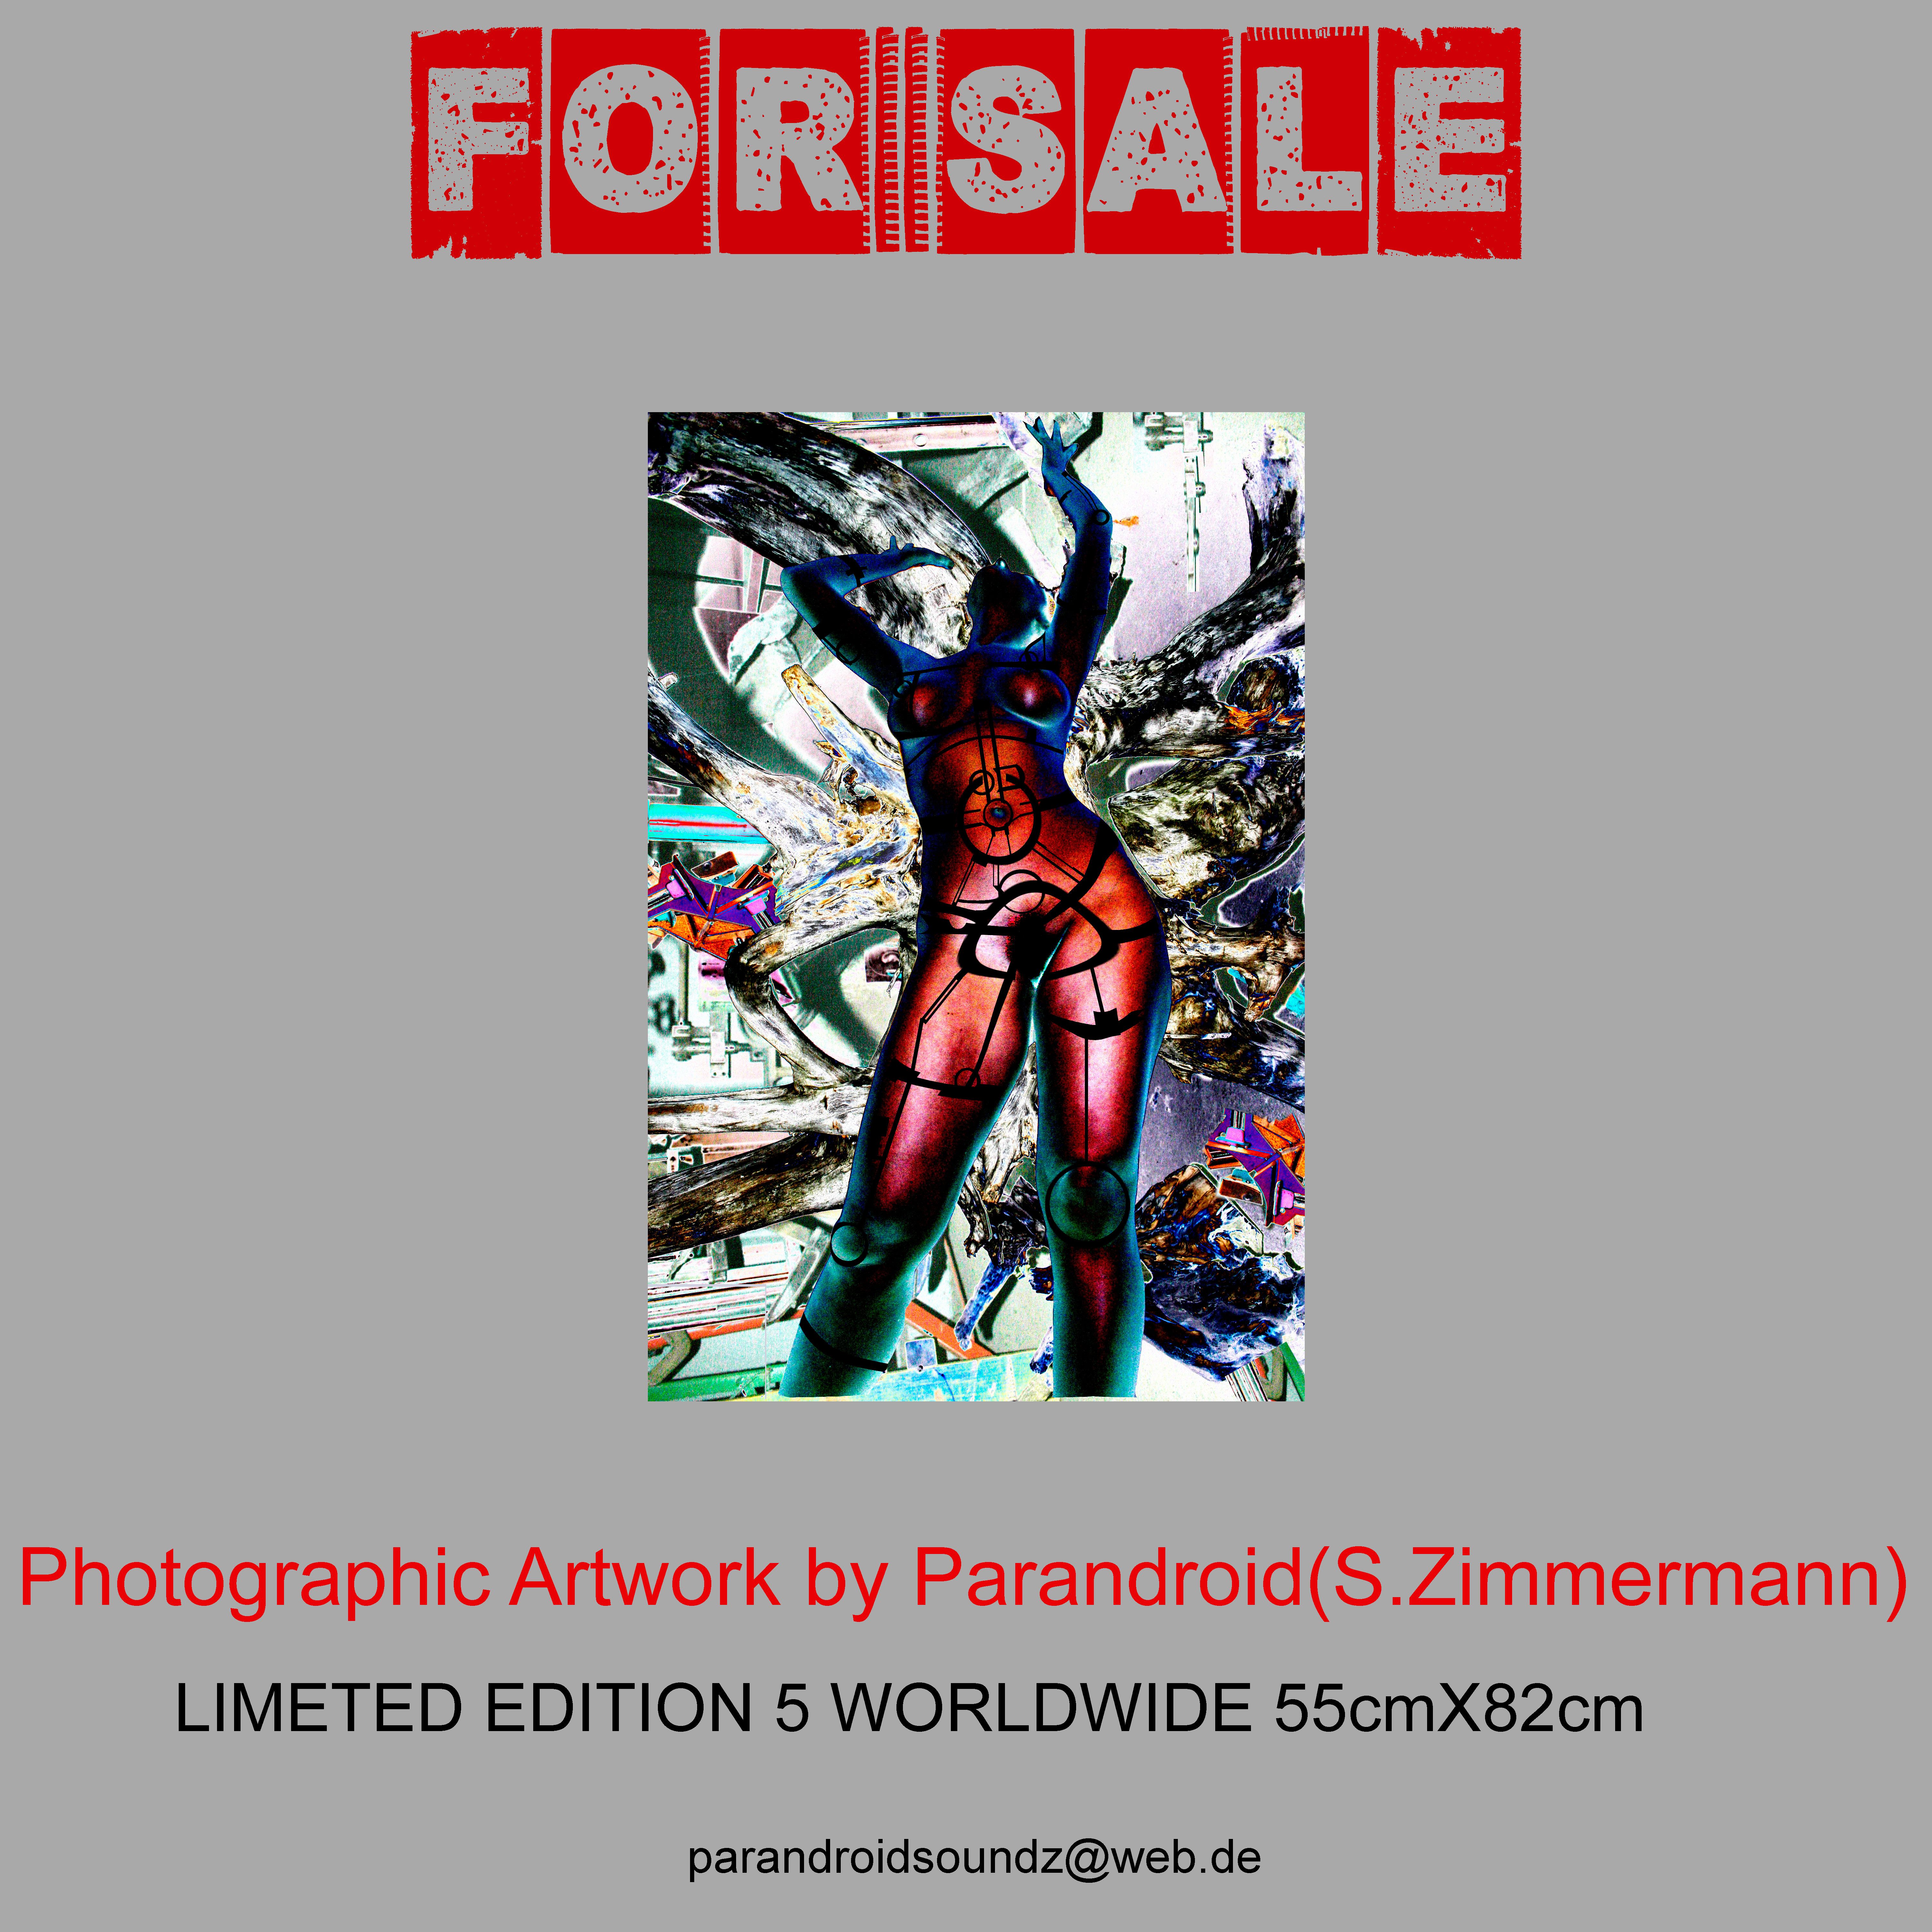 for-sale-4